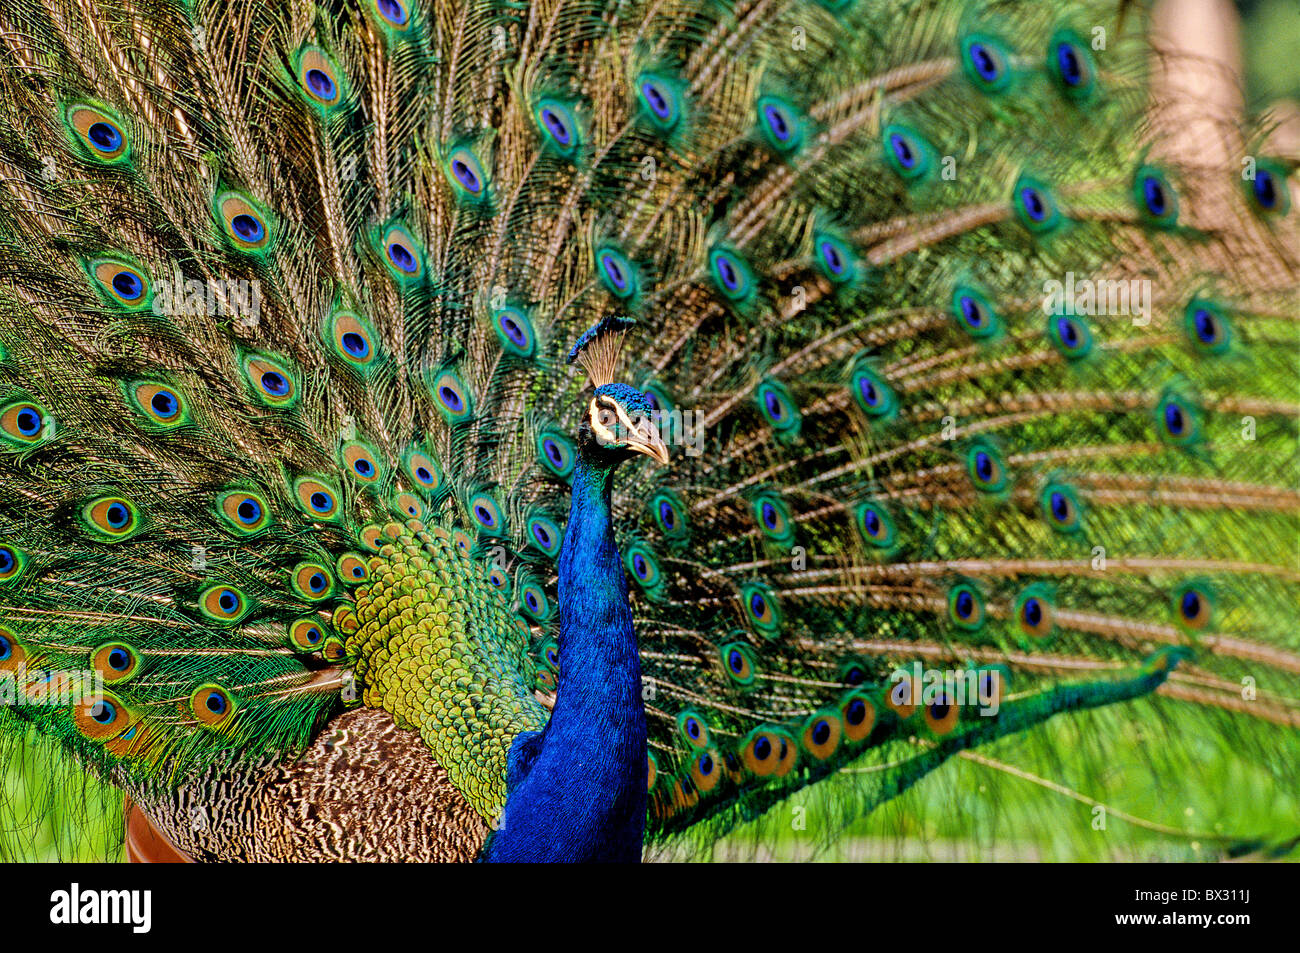 the national bird peacock essays The peacock, pavo cristatus (linnaeus), is the national bird of india it is a symbol of grace, joy, beauty and love the significance of peacock is attached to cultures of india, far east, ancient persia, greek and christian in hinduism, the image of the god of thunder, rains and war, indra, was.